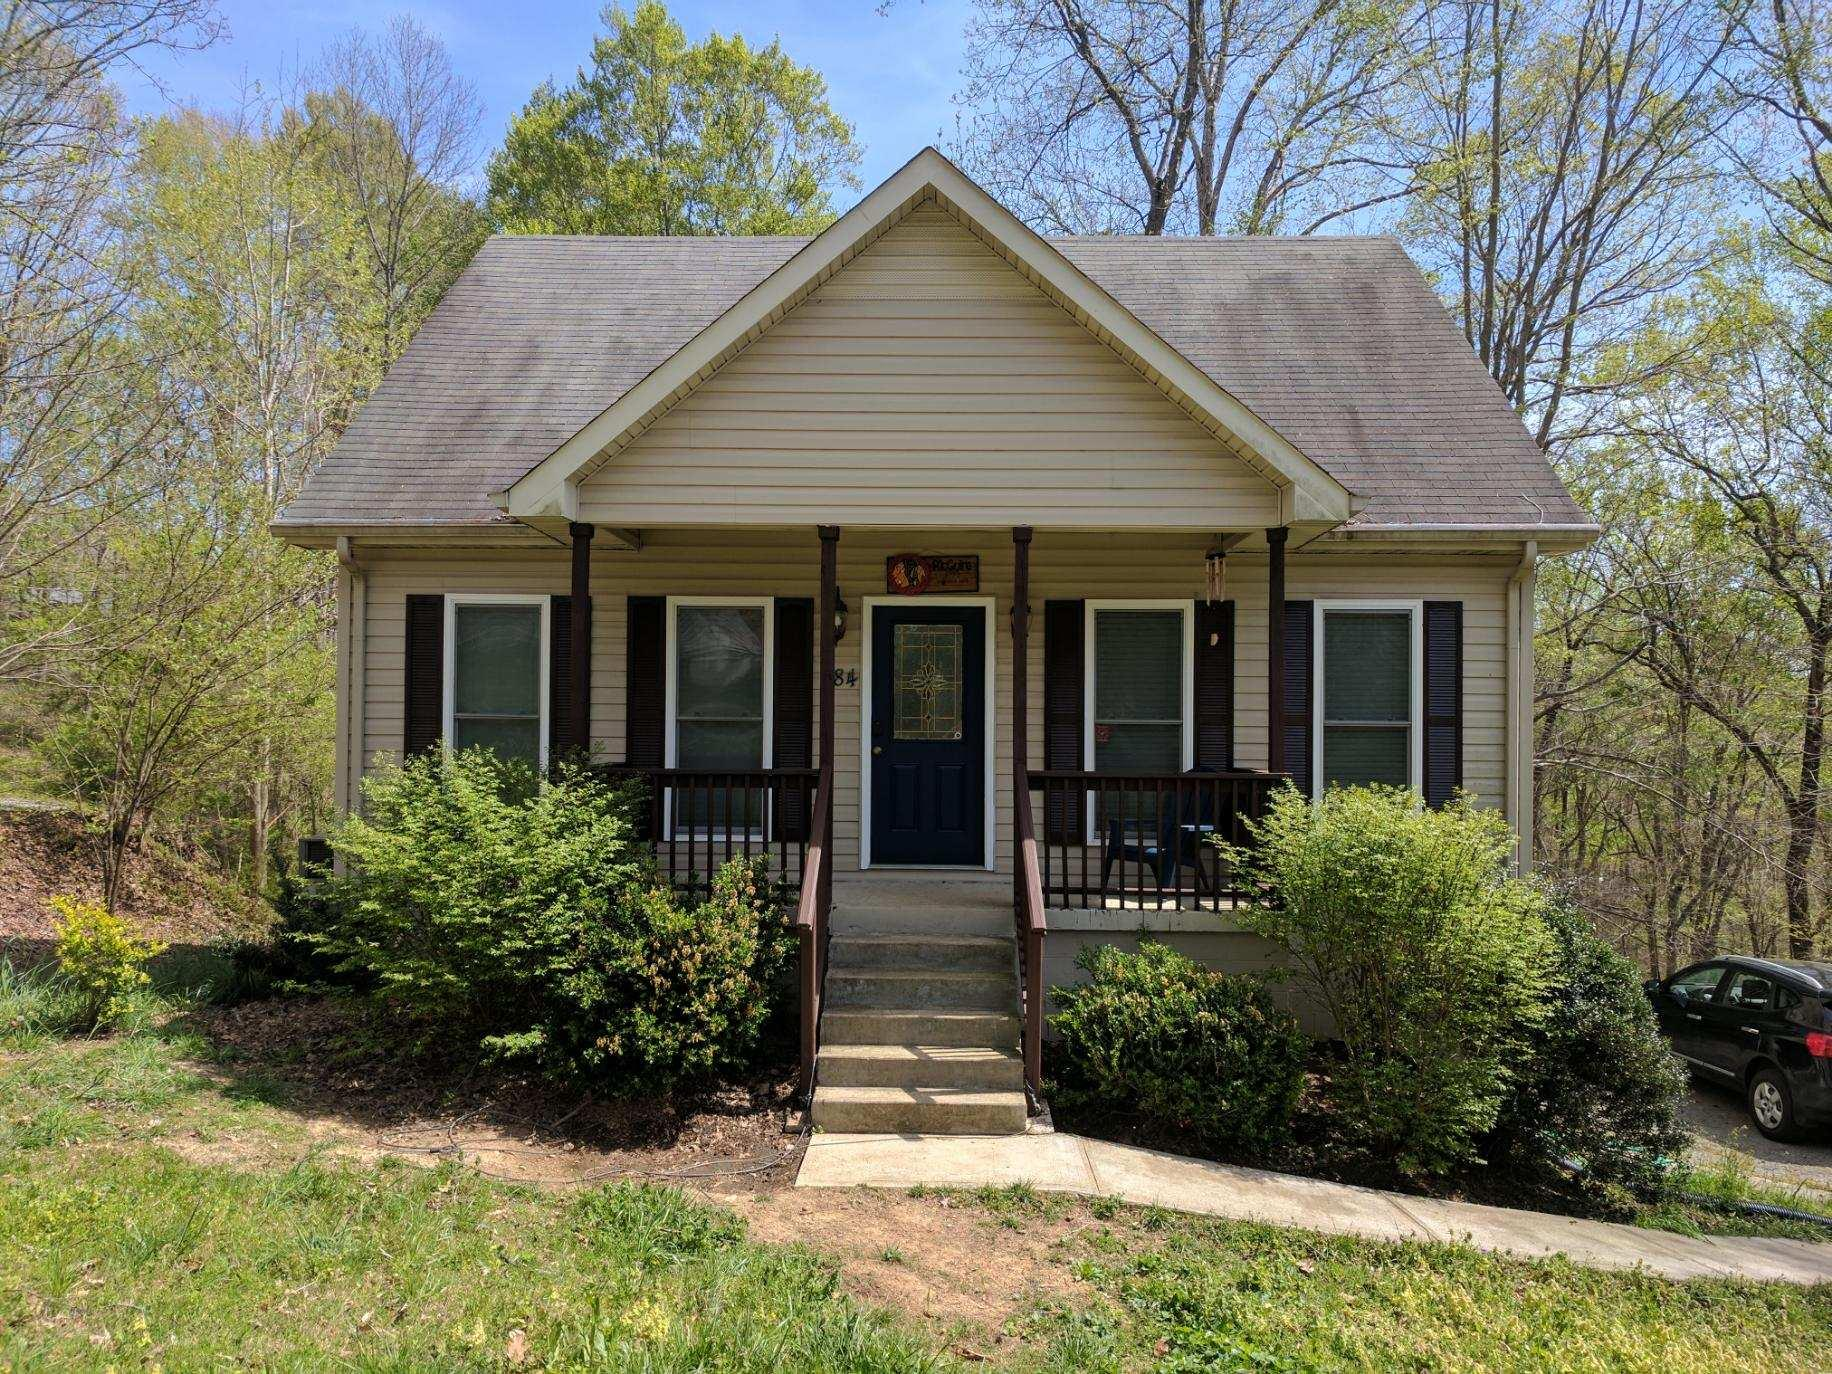 184 Plum Dr, Ashland City, TN 37015 - Ashland City, TN real estate listing